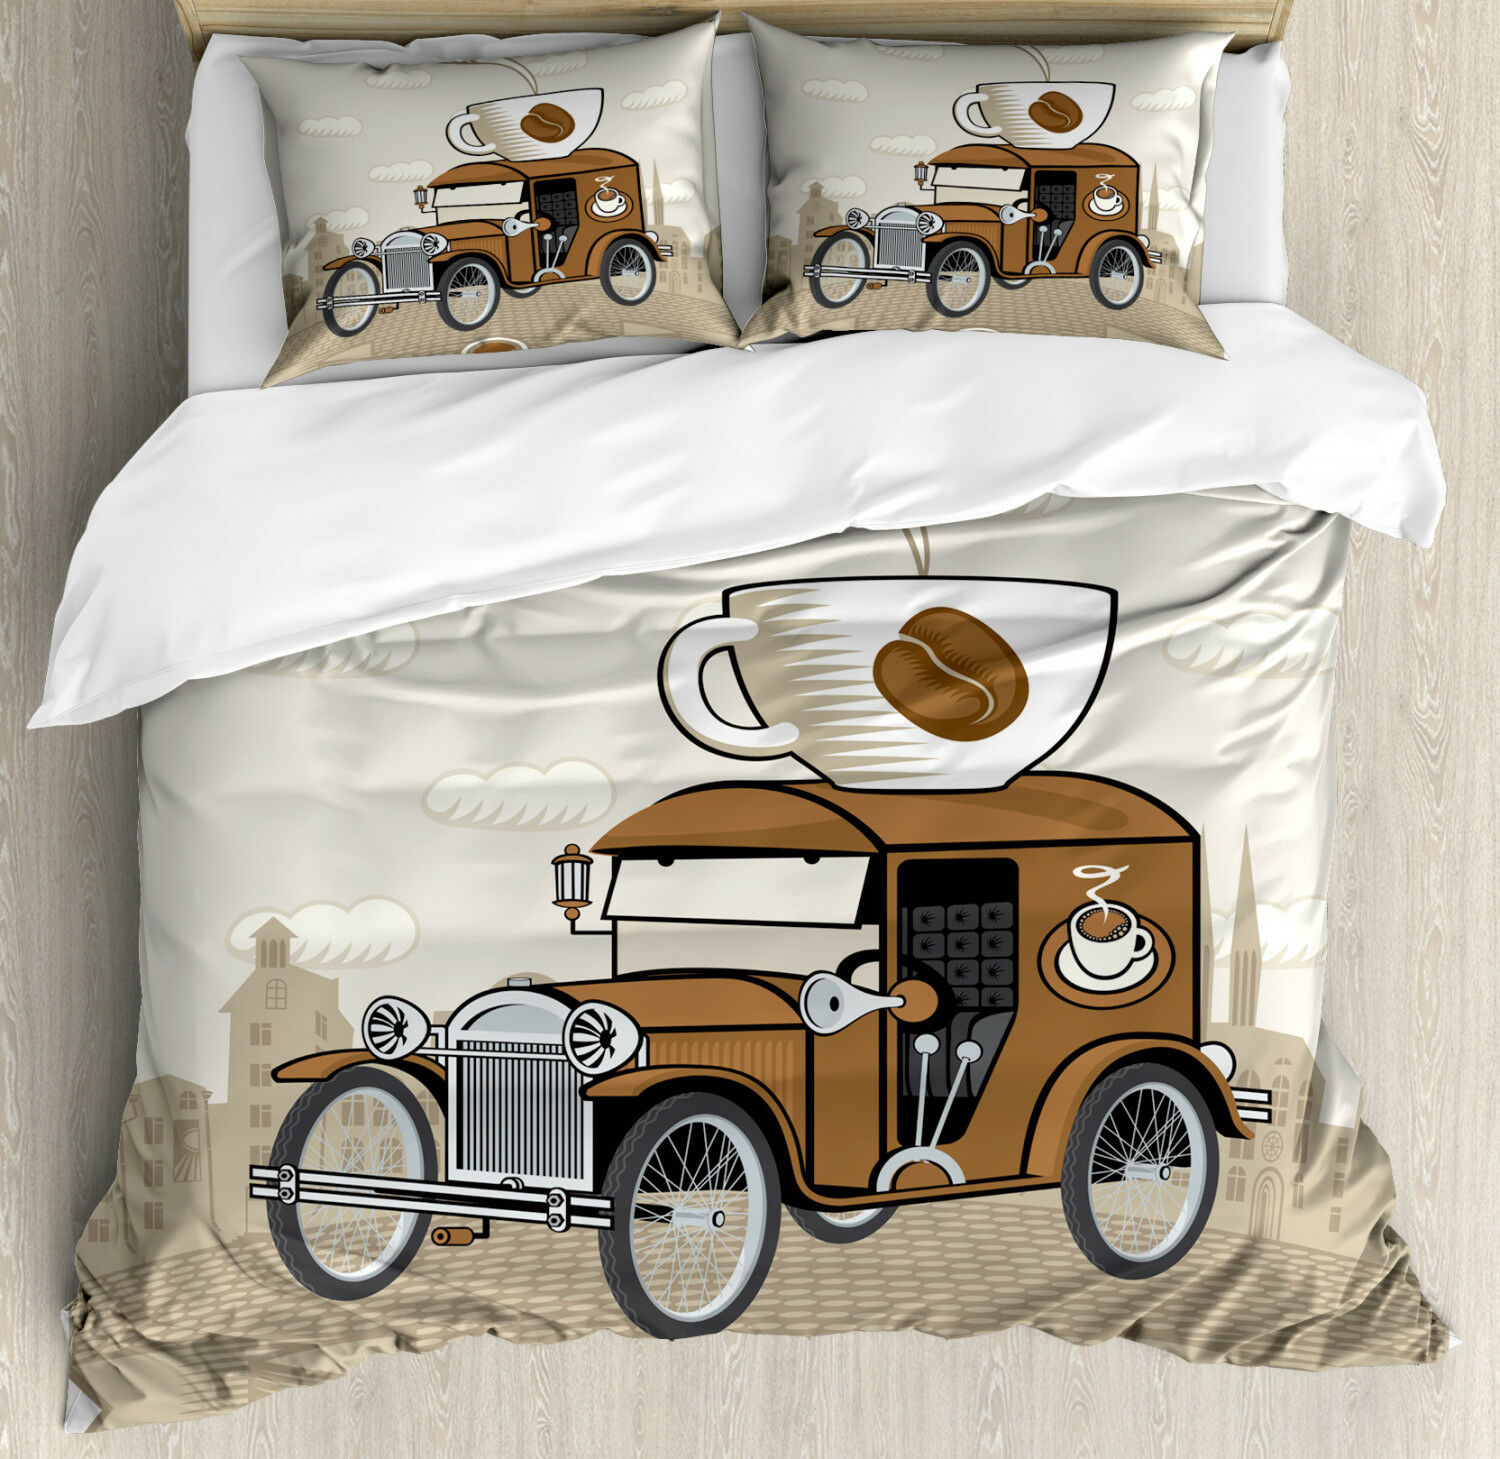 Cars Duvet Cover Set with Pillow Shams Old Fashioned Ride Coffee Print